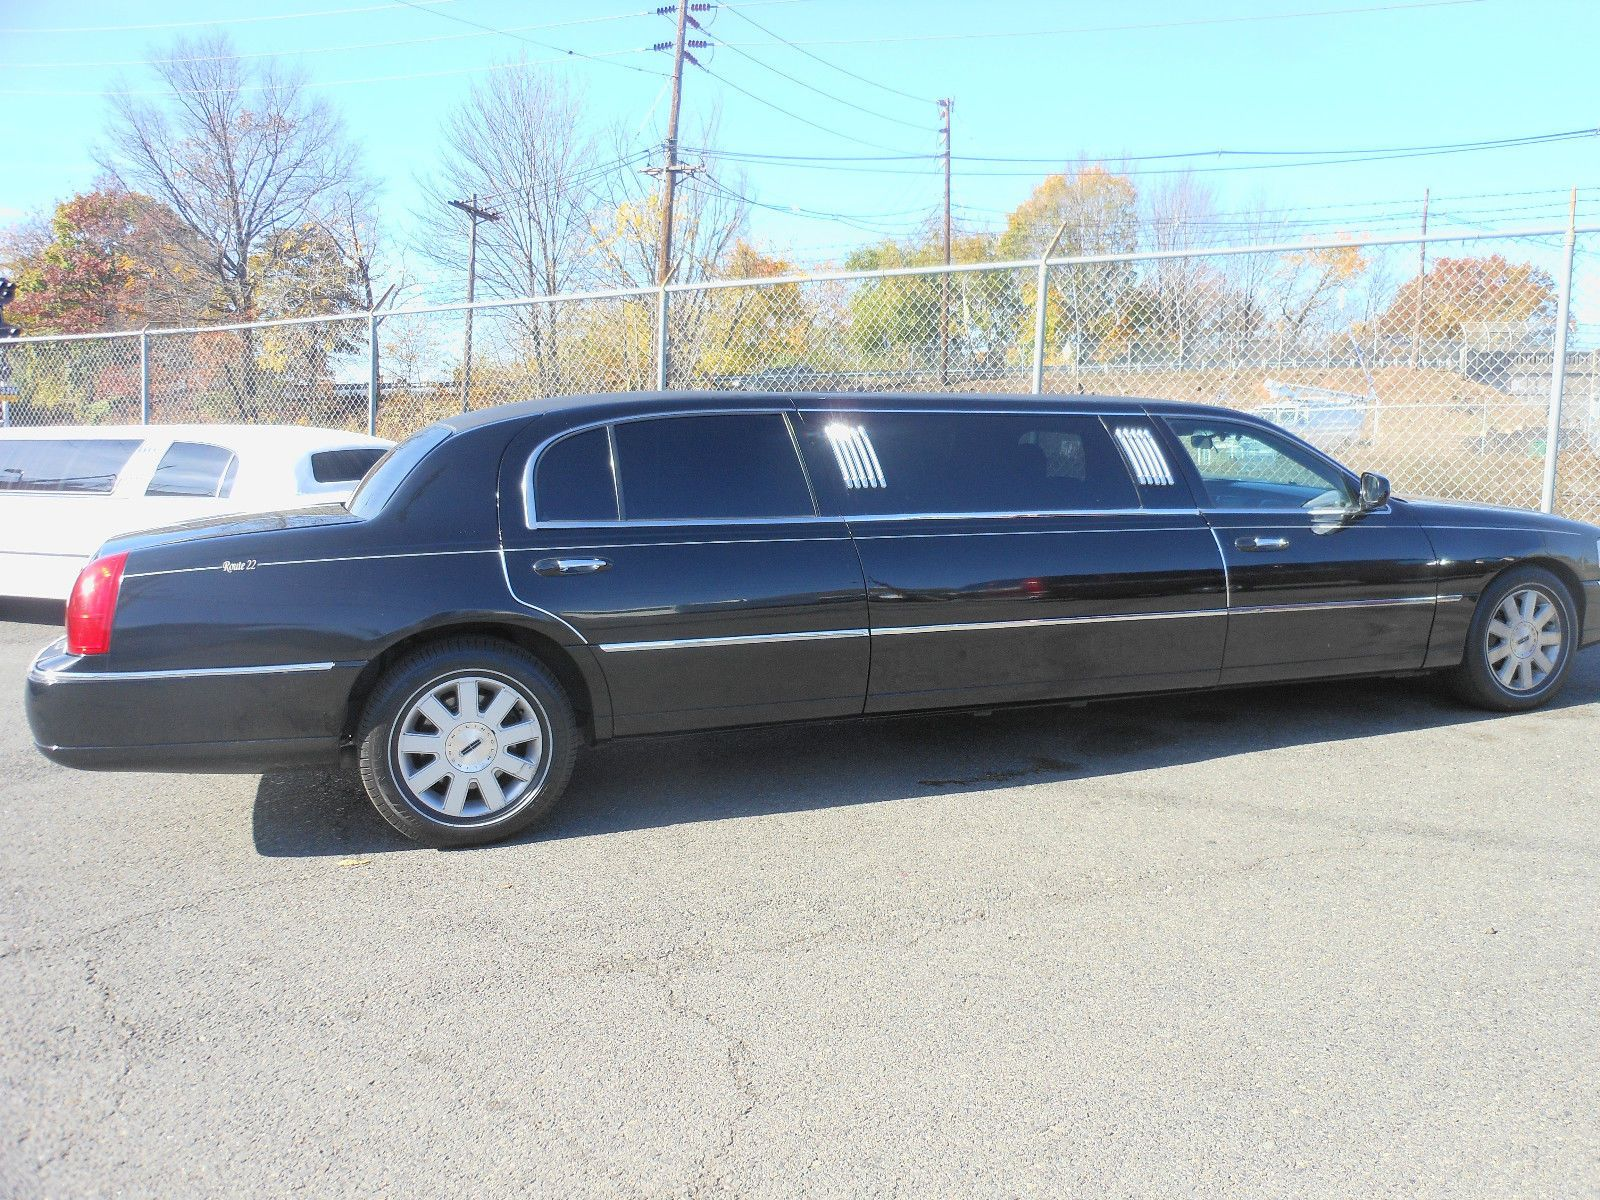 2003 lincoln town car limousine 6 passenger limousine super clean with rear long door with miles car 39 has been in service as part of our expansive fleet